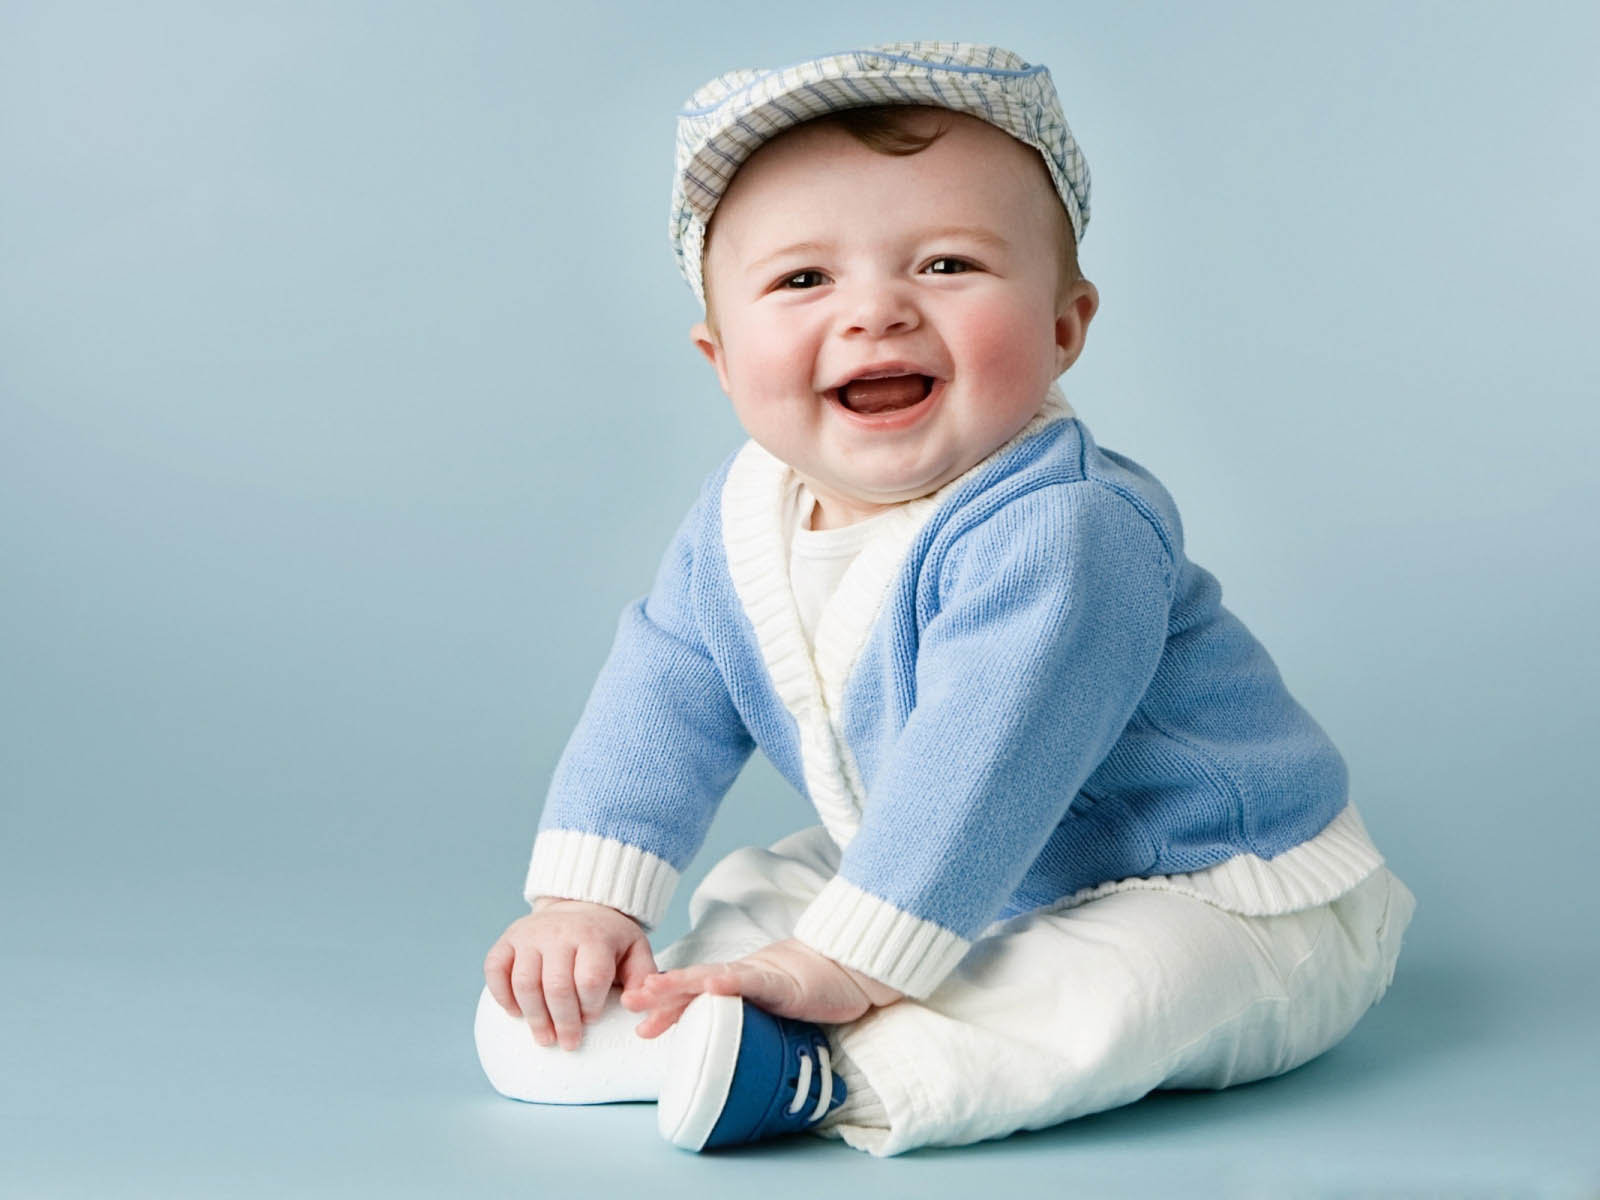 wallpapers: smart babies wallpapers